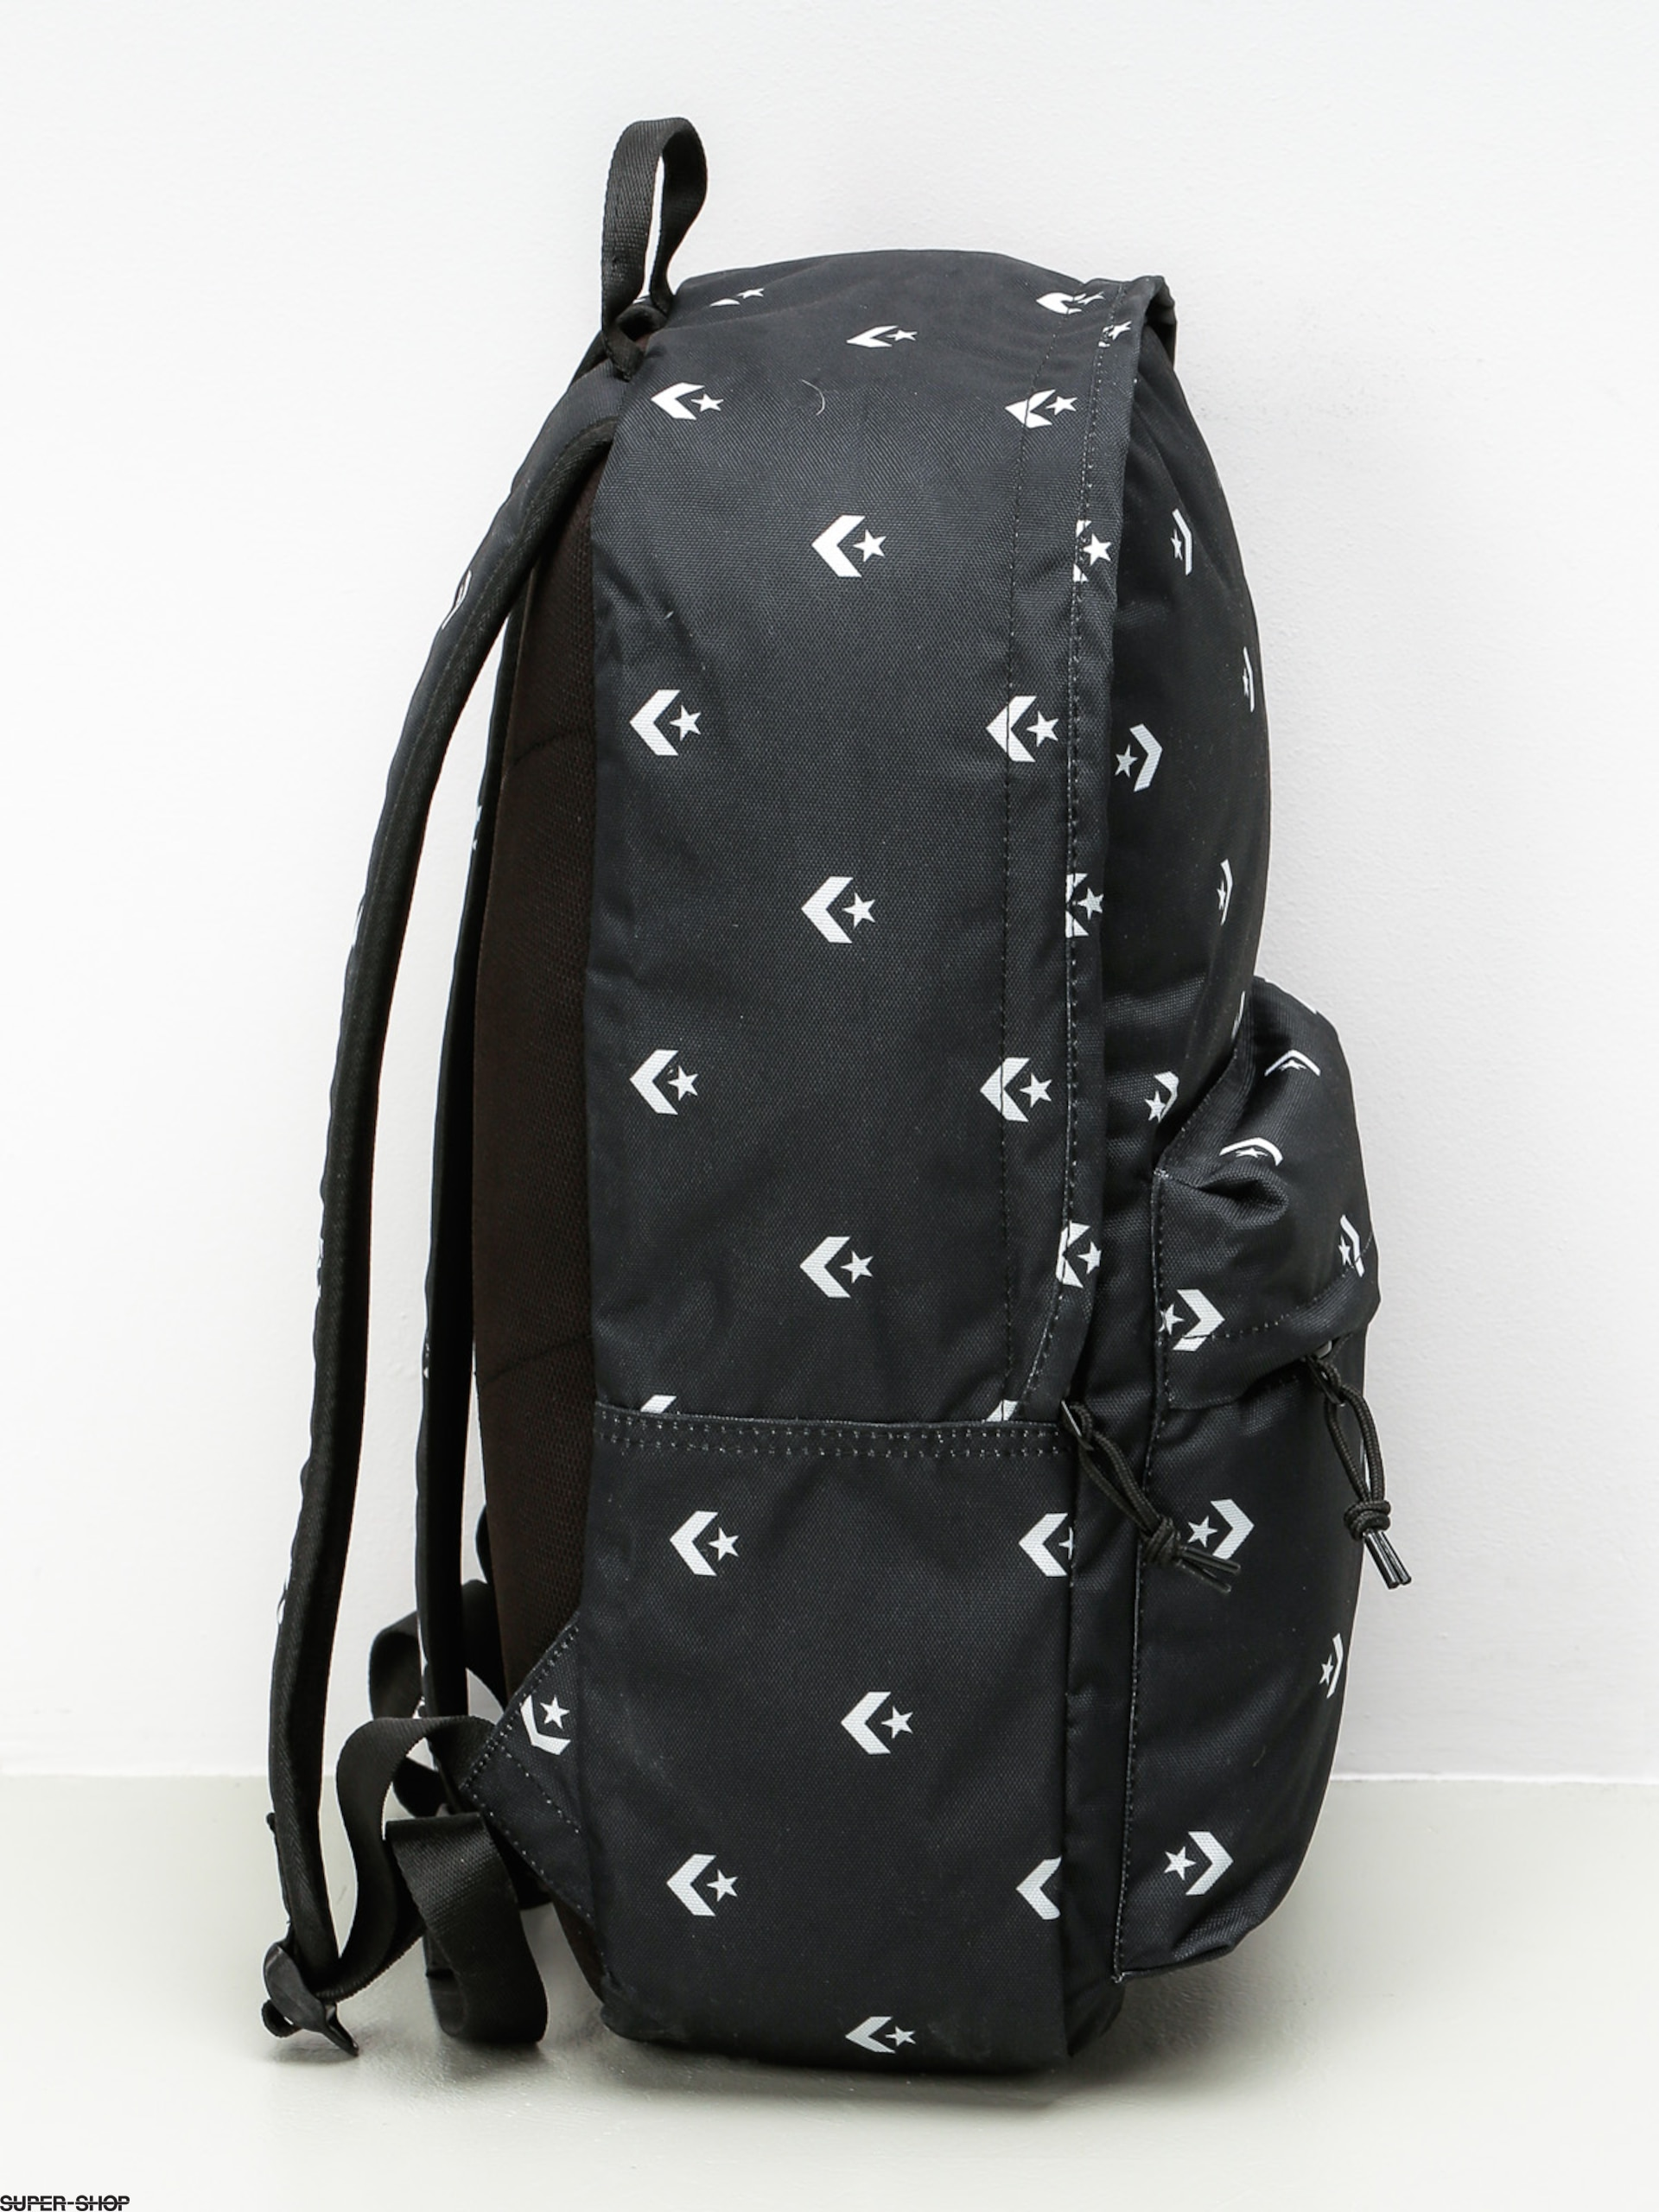 4d0efb66877c7 Converse Backpack Edc Poly (star chevron repeat black)